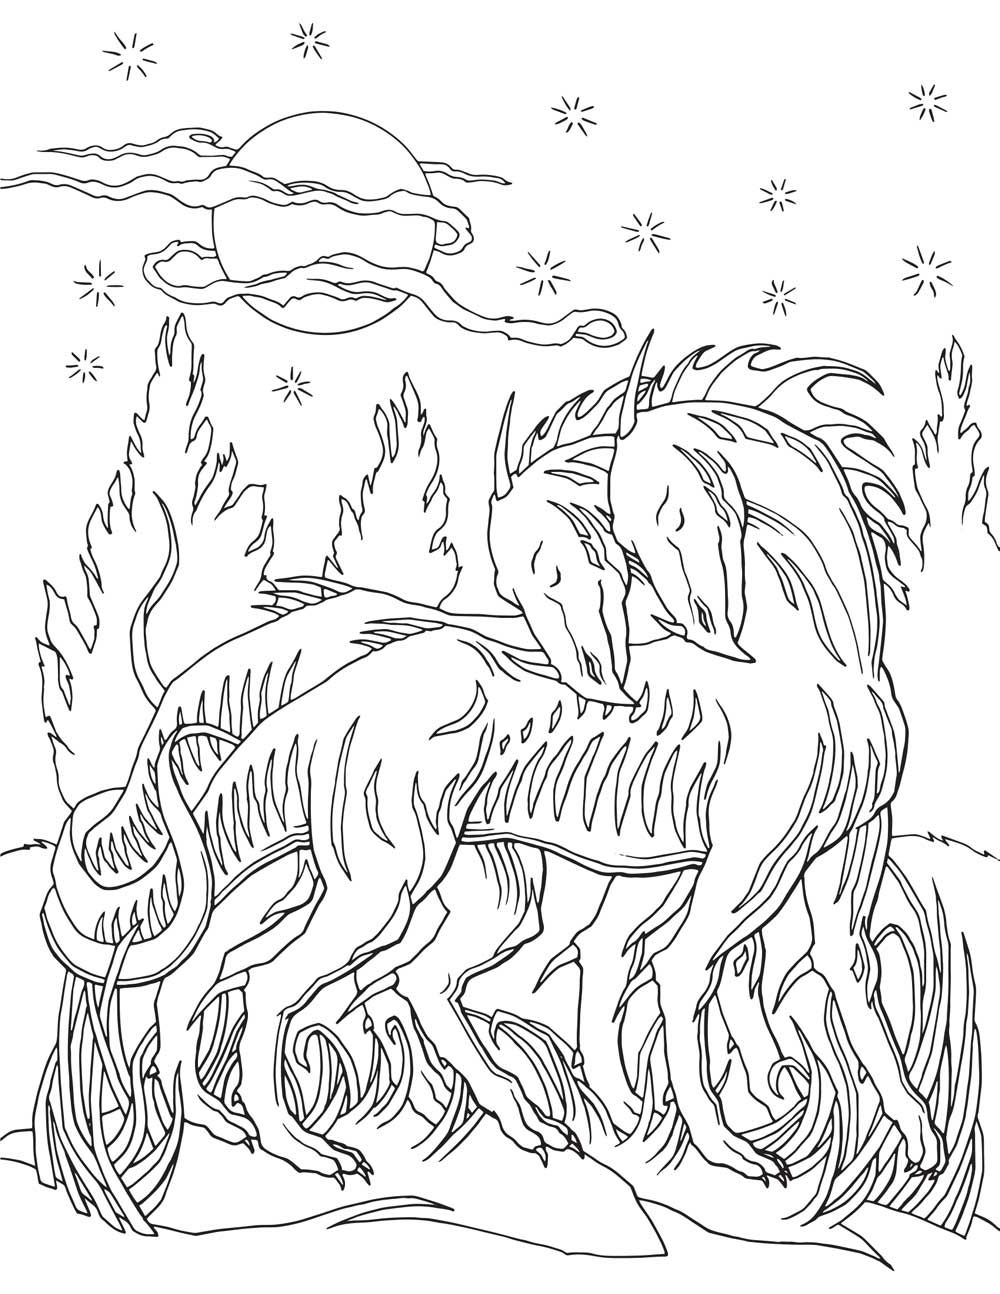 Dragon Coloring Book For Adults Coloring Page Pinterest